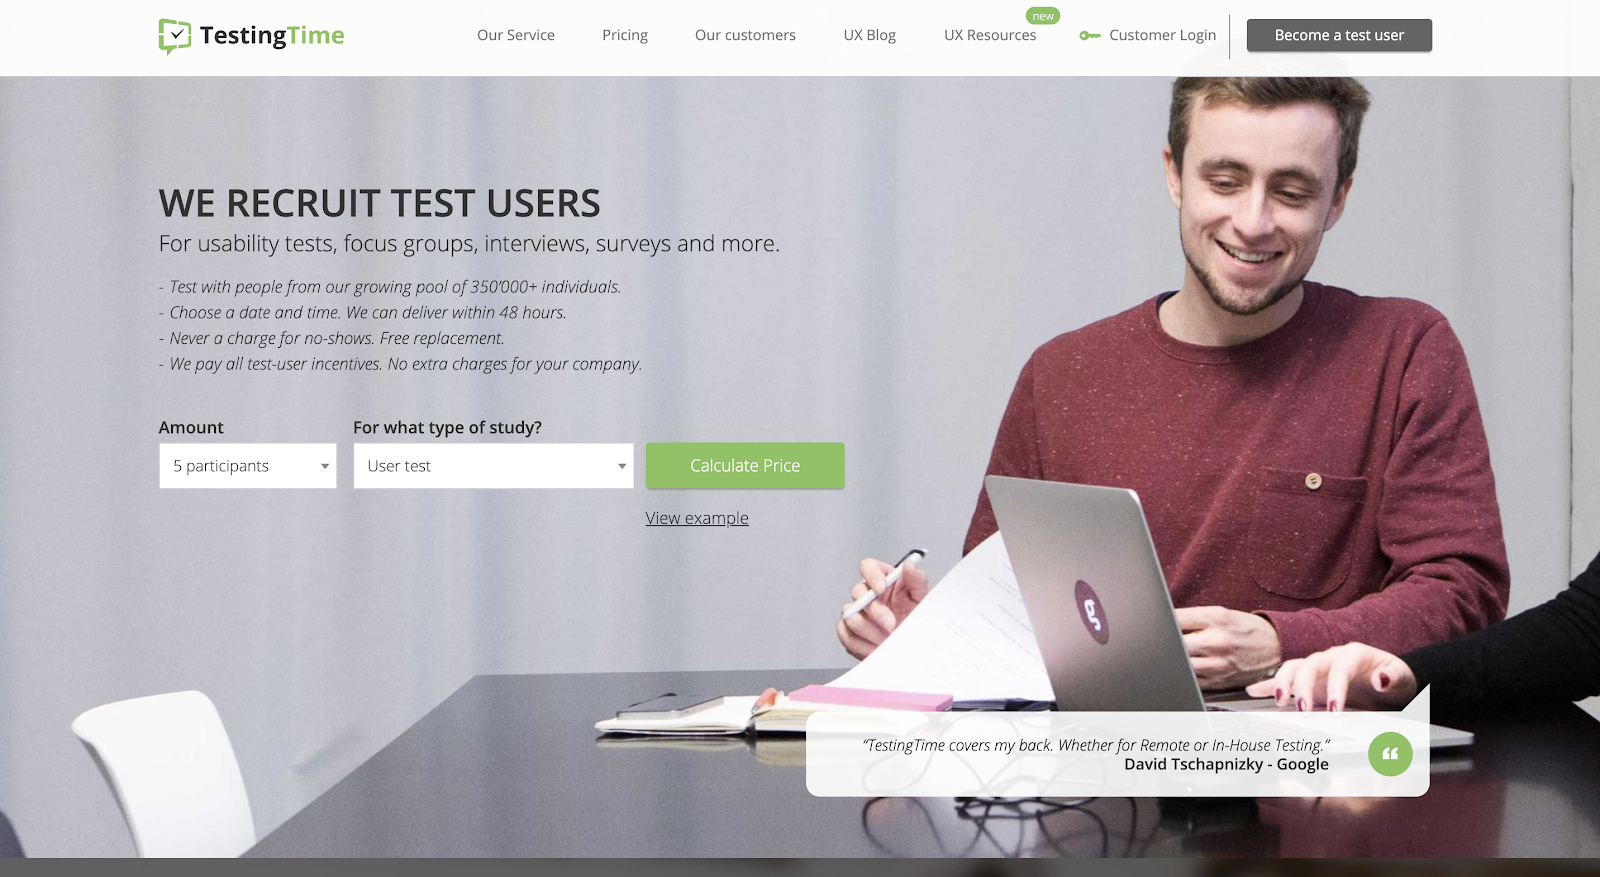 TestingTime as a UX research toolbox